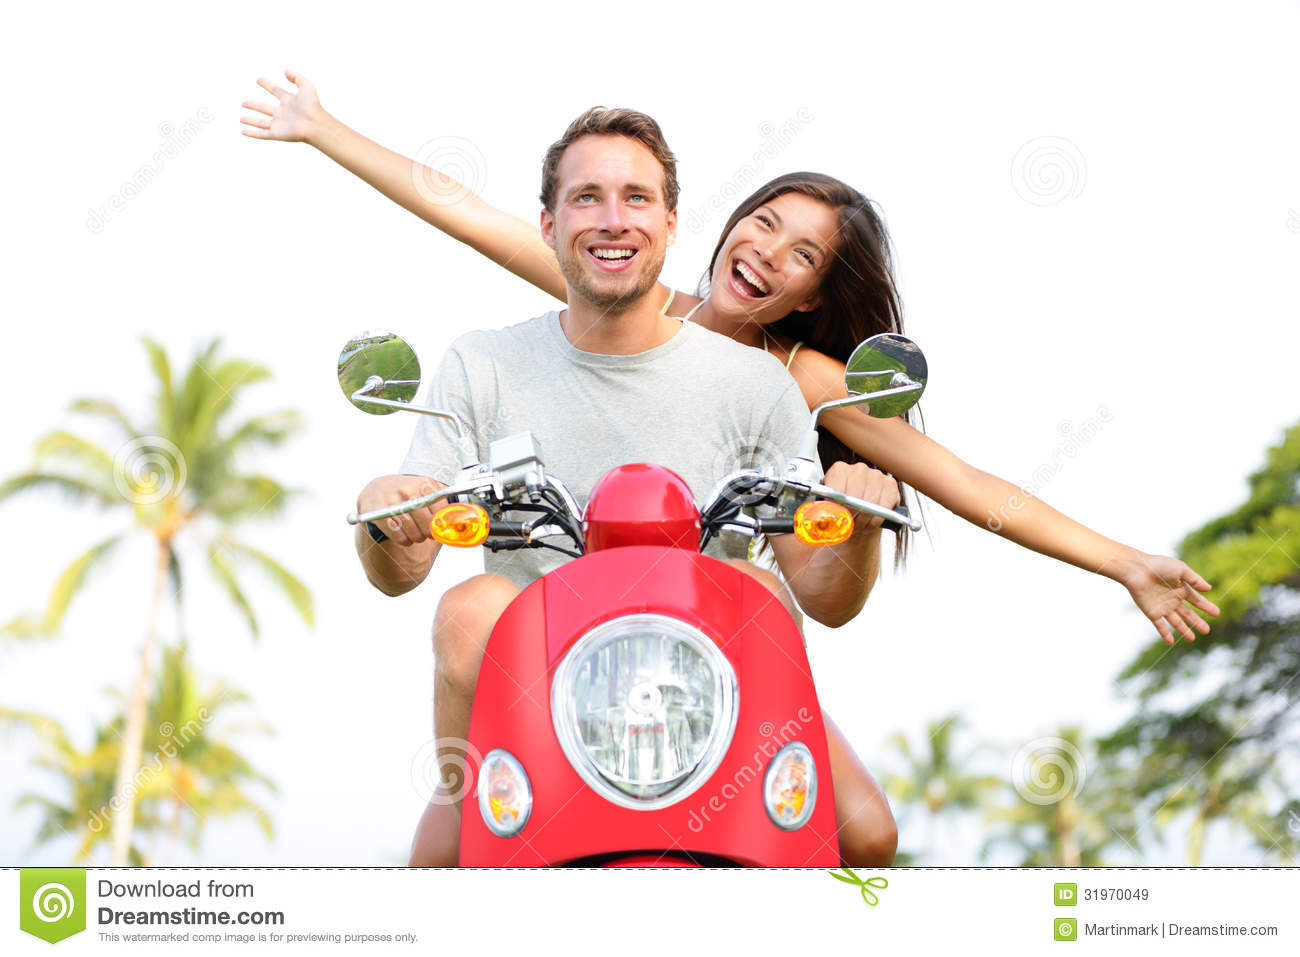 happy-free-freedom-couple-driving-scooter-excited-summer-holidays-vacation-young-multiethnic-love-asian-woman-31970049